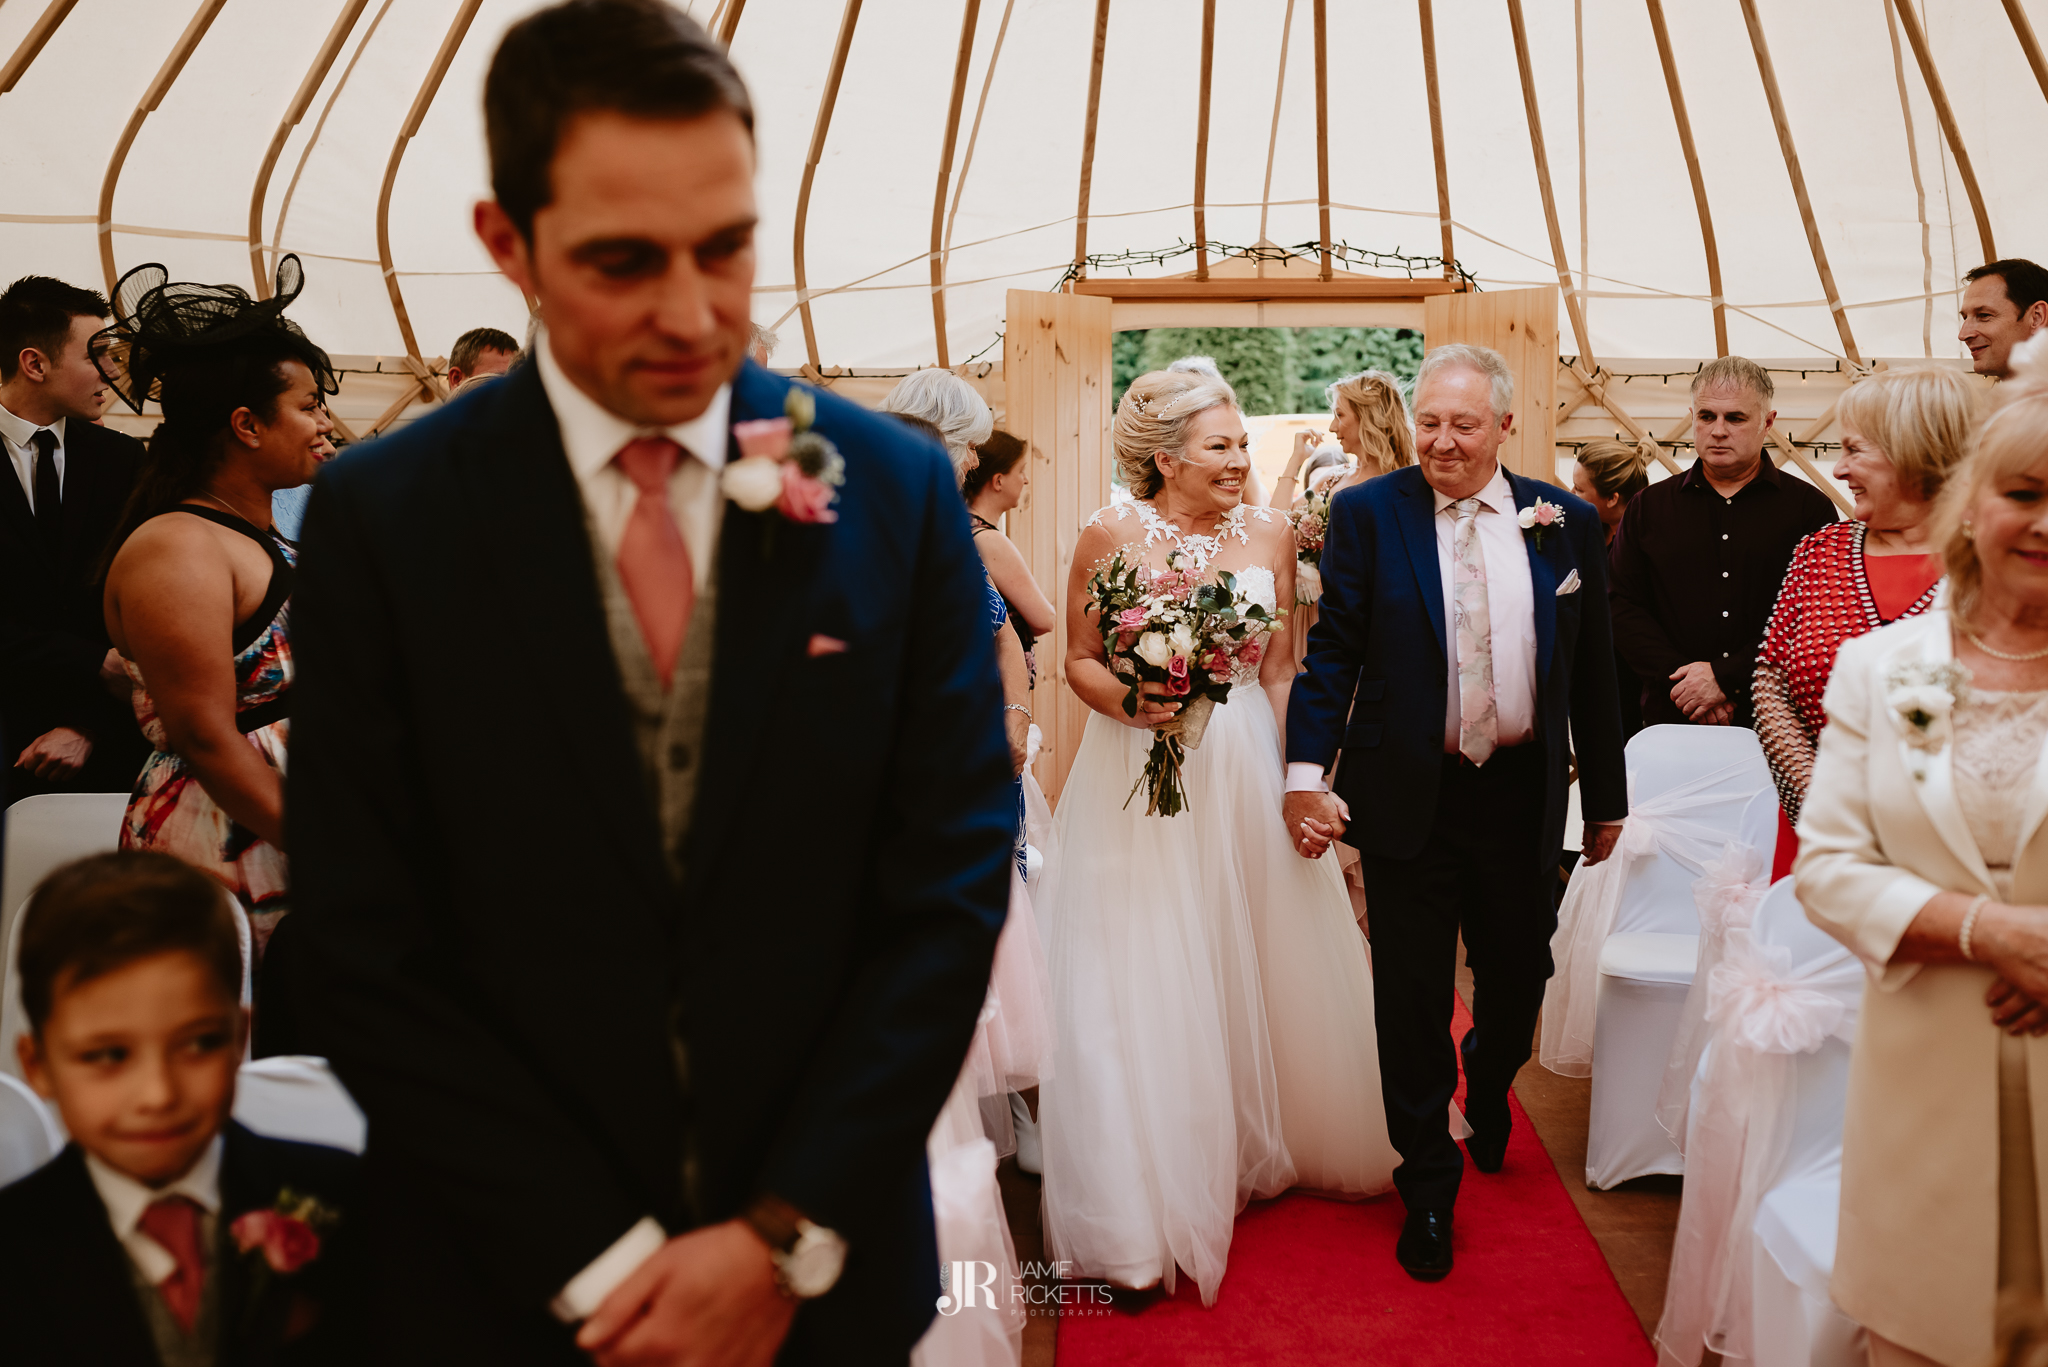 Wroxeter-Hotel-Wedding-Photography-In-Shropshire-By-Shropshire-Wedding-Photographer-Jamie-Ricketts-053.JPG